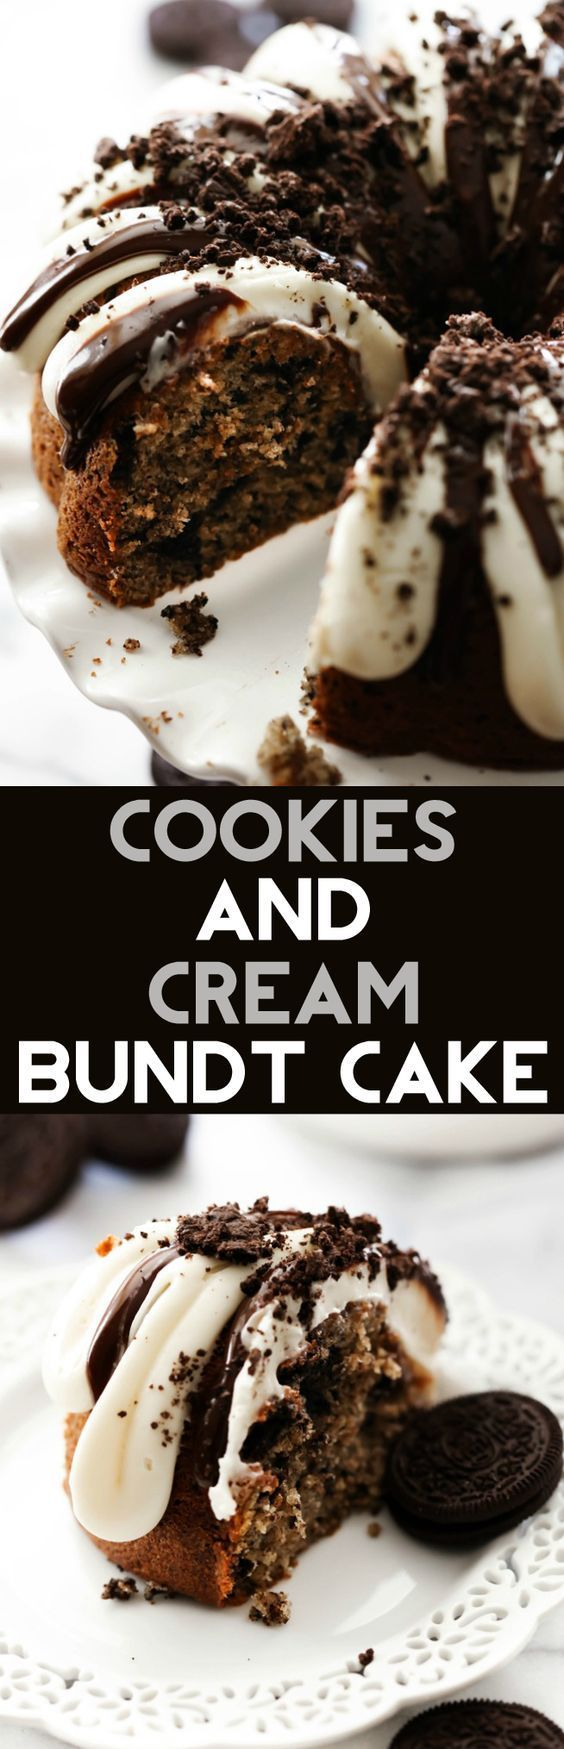 Cookies and Cream Bundt Cake - Chef in Training